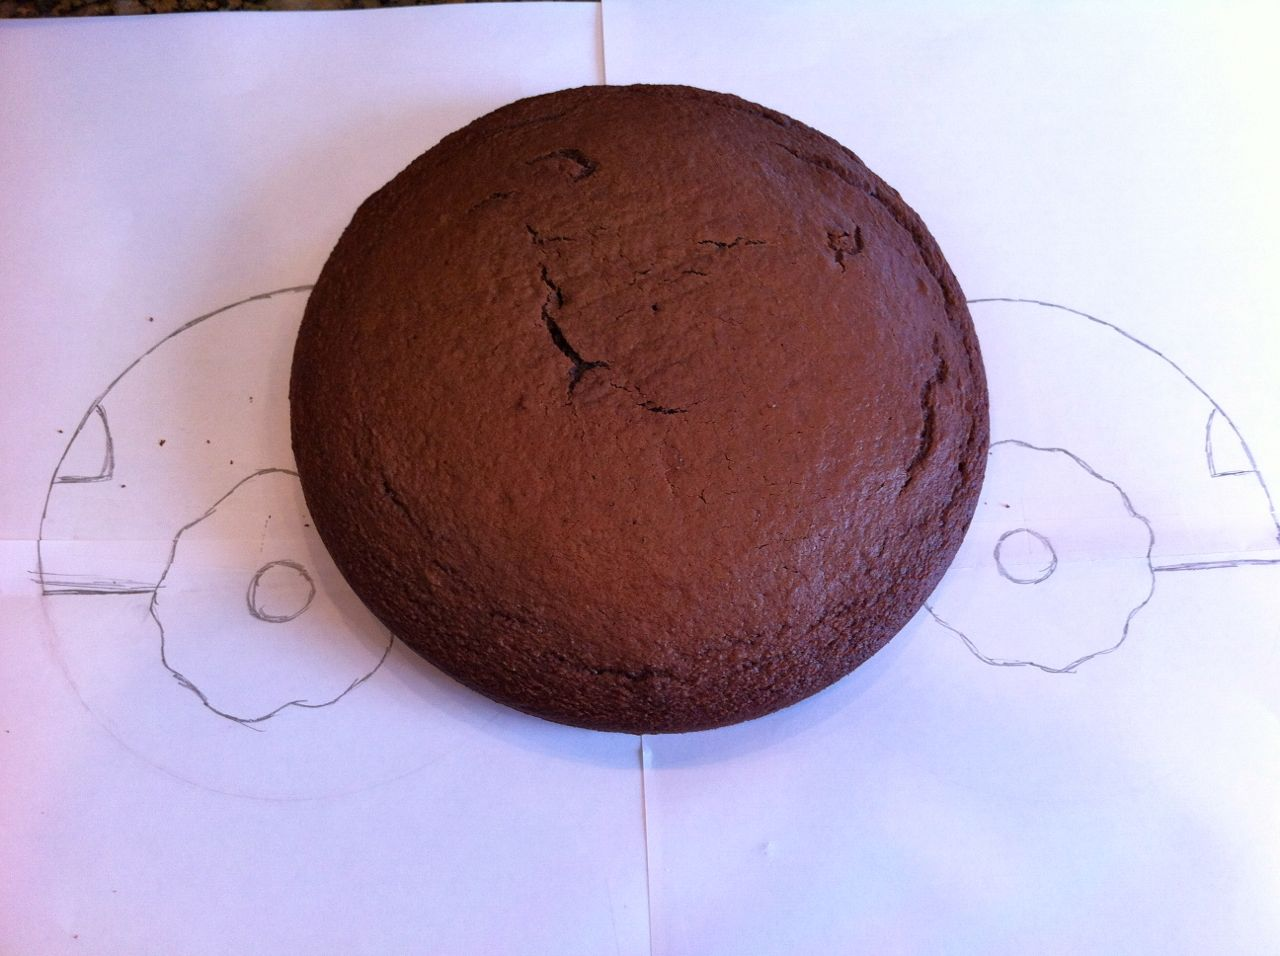 Round Cake Template Place the 6 inch round cake on